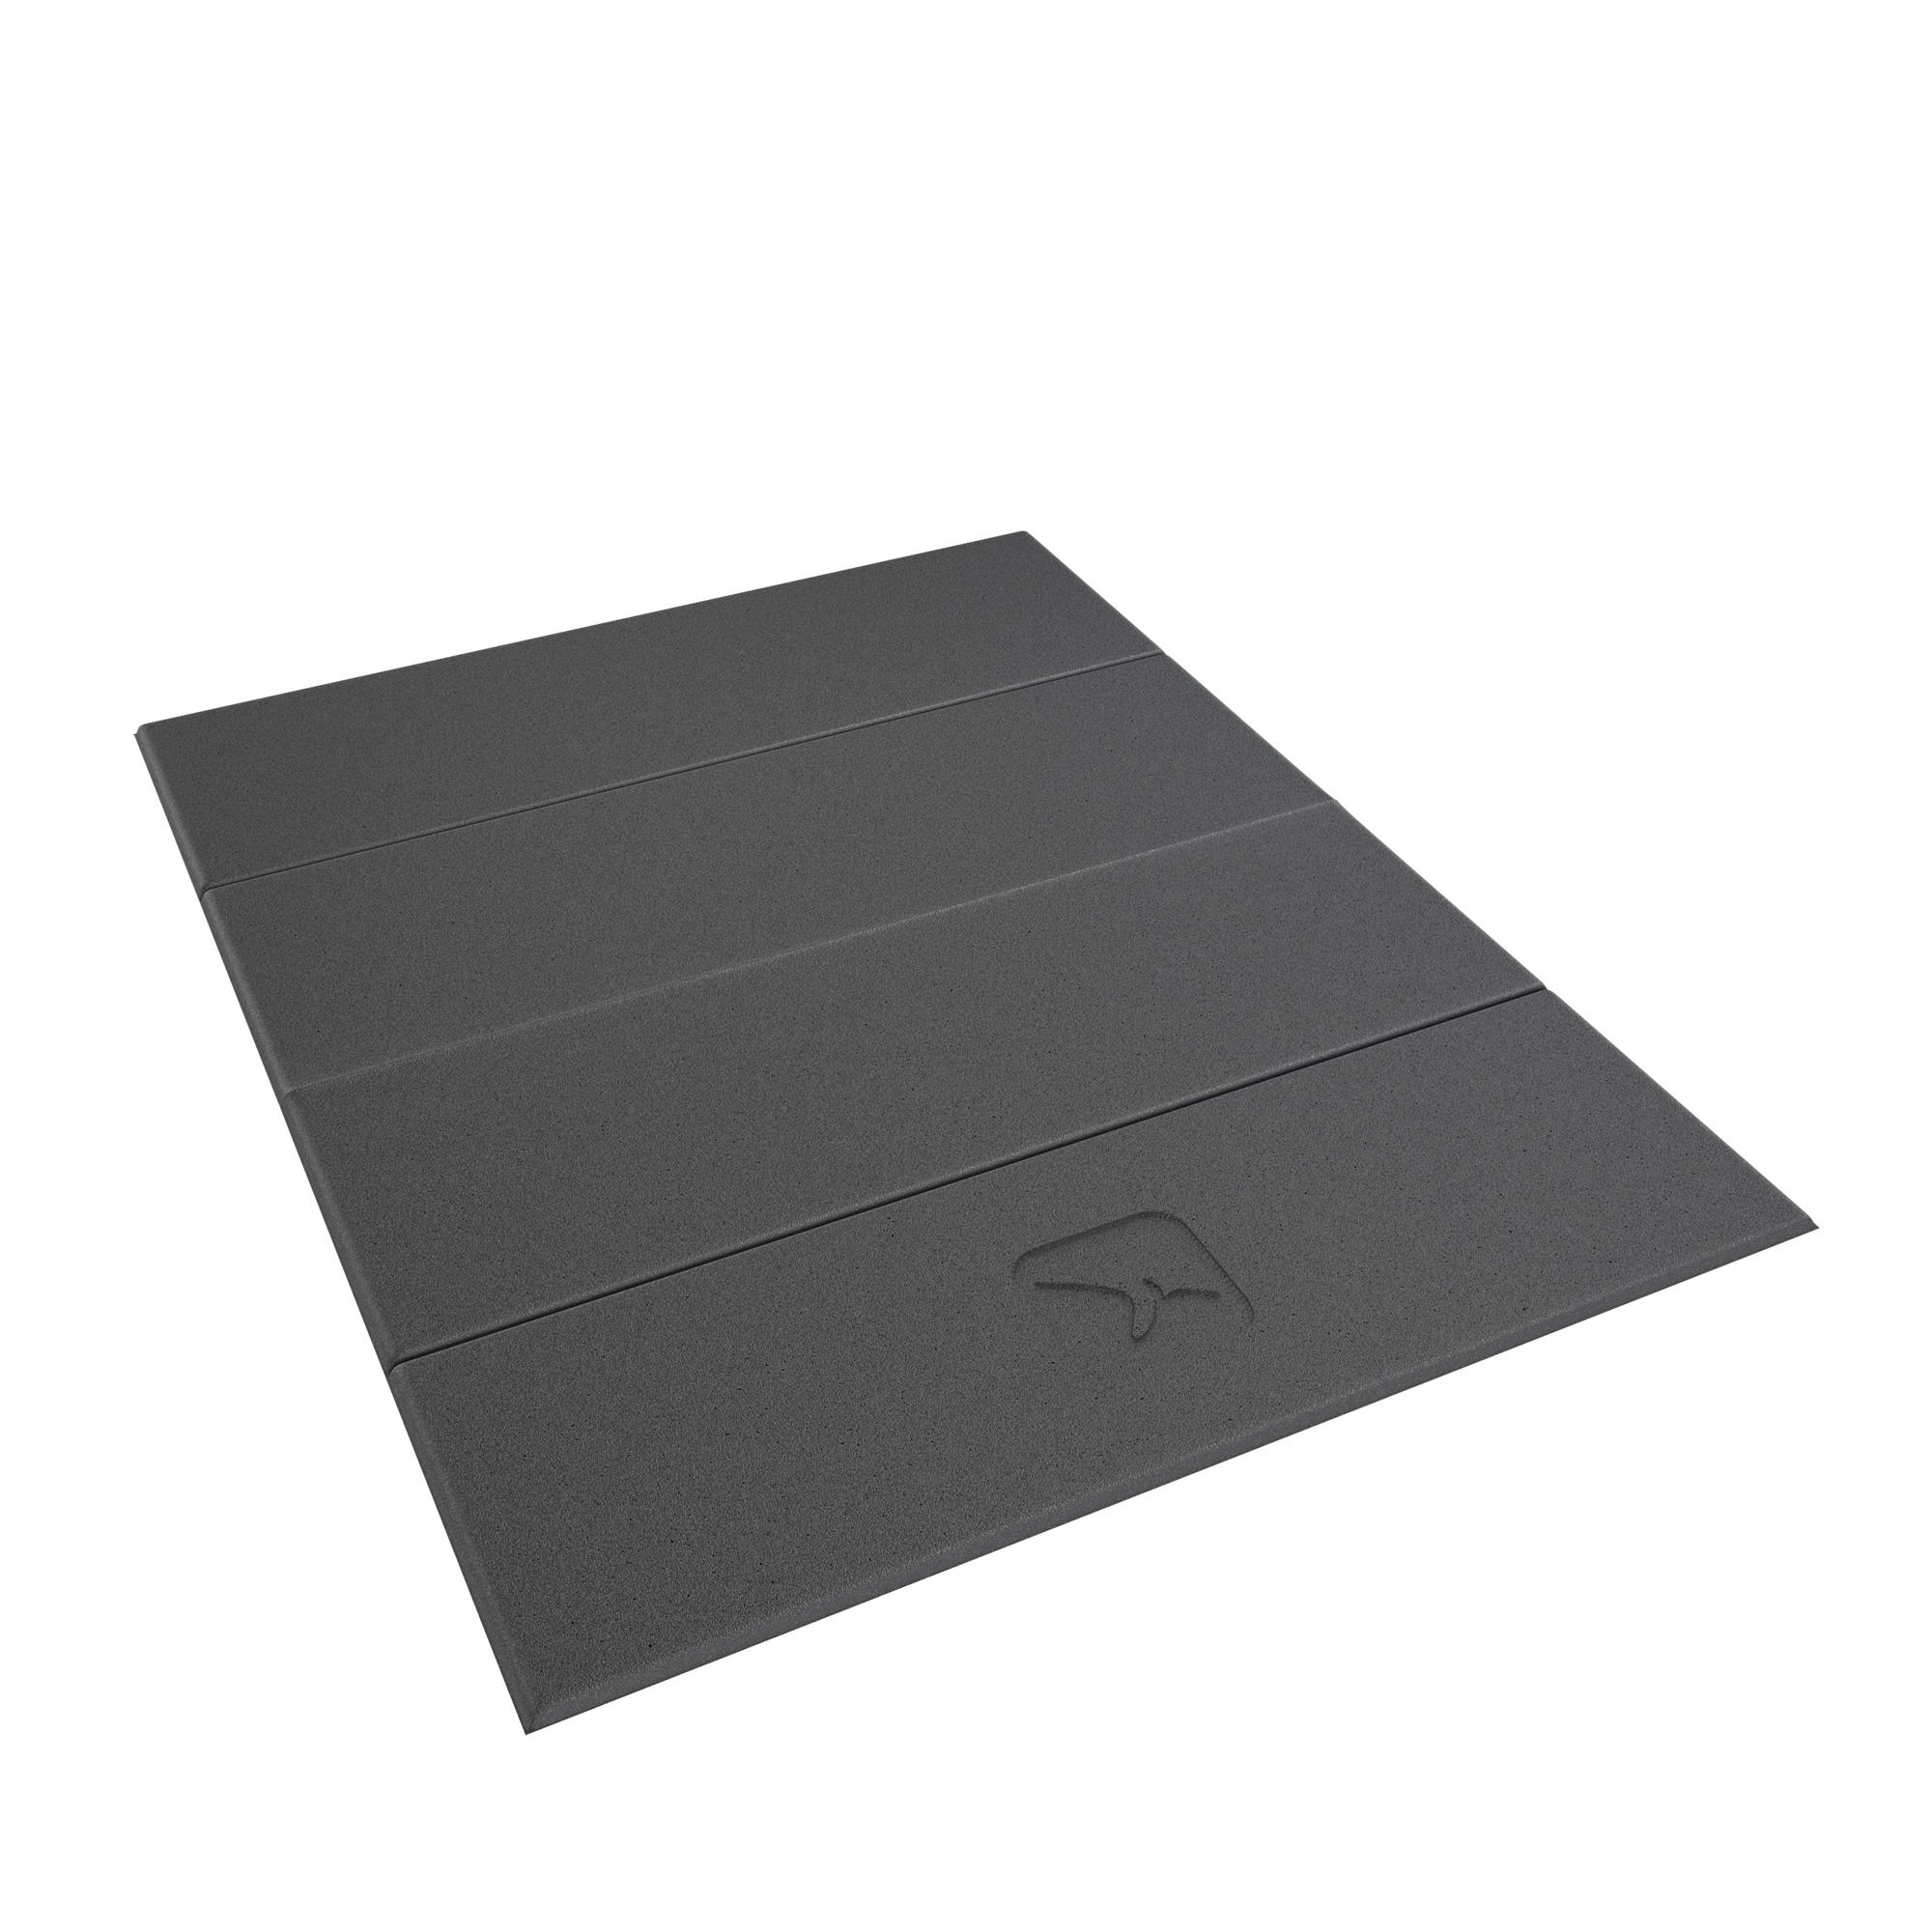 Mini Gym Mat for Core Work, Weight Training, Stretching